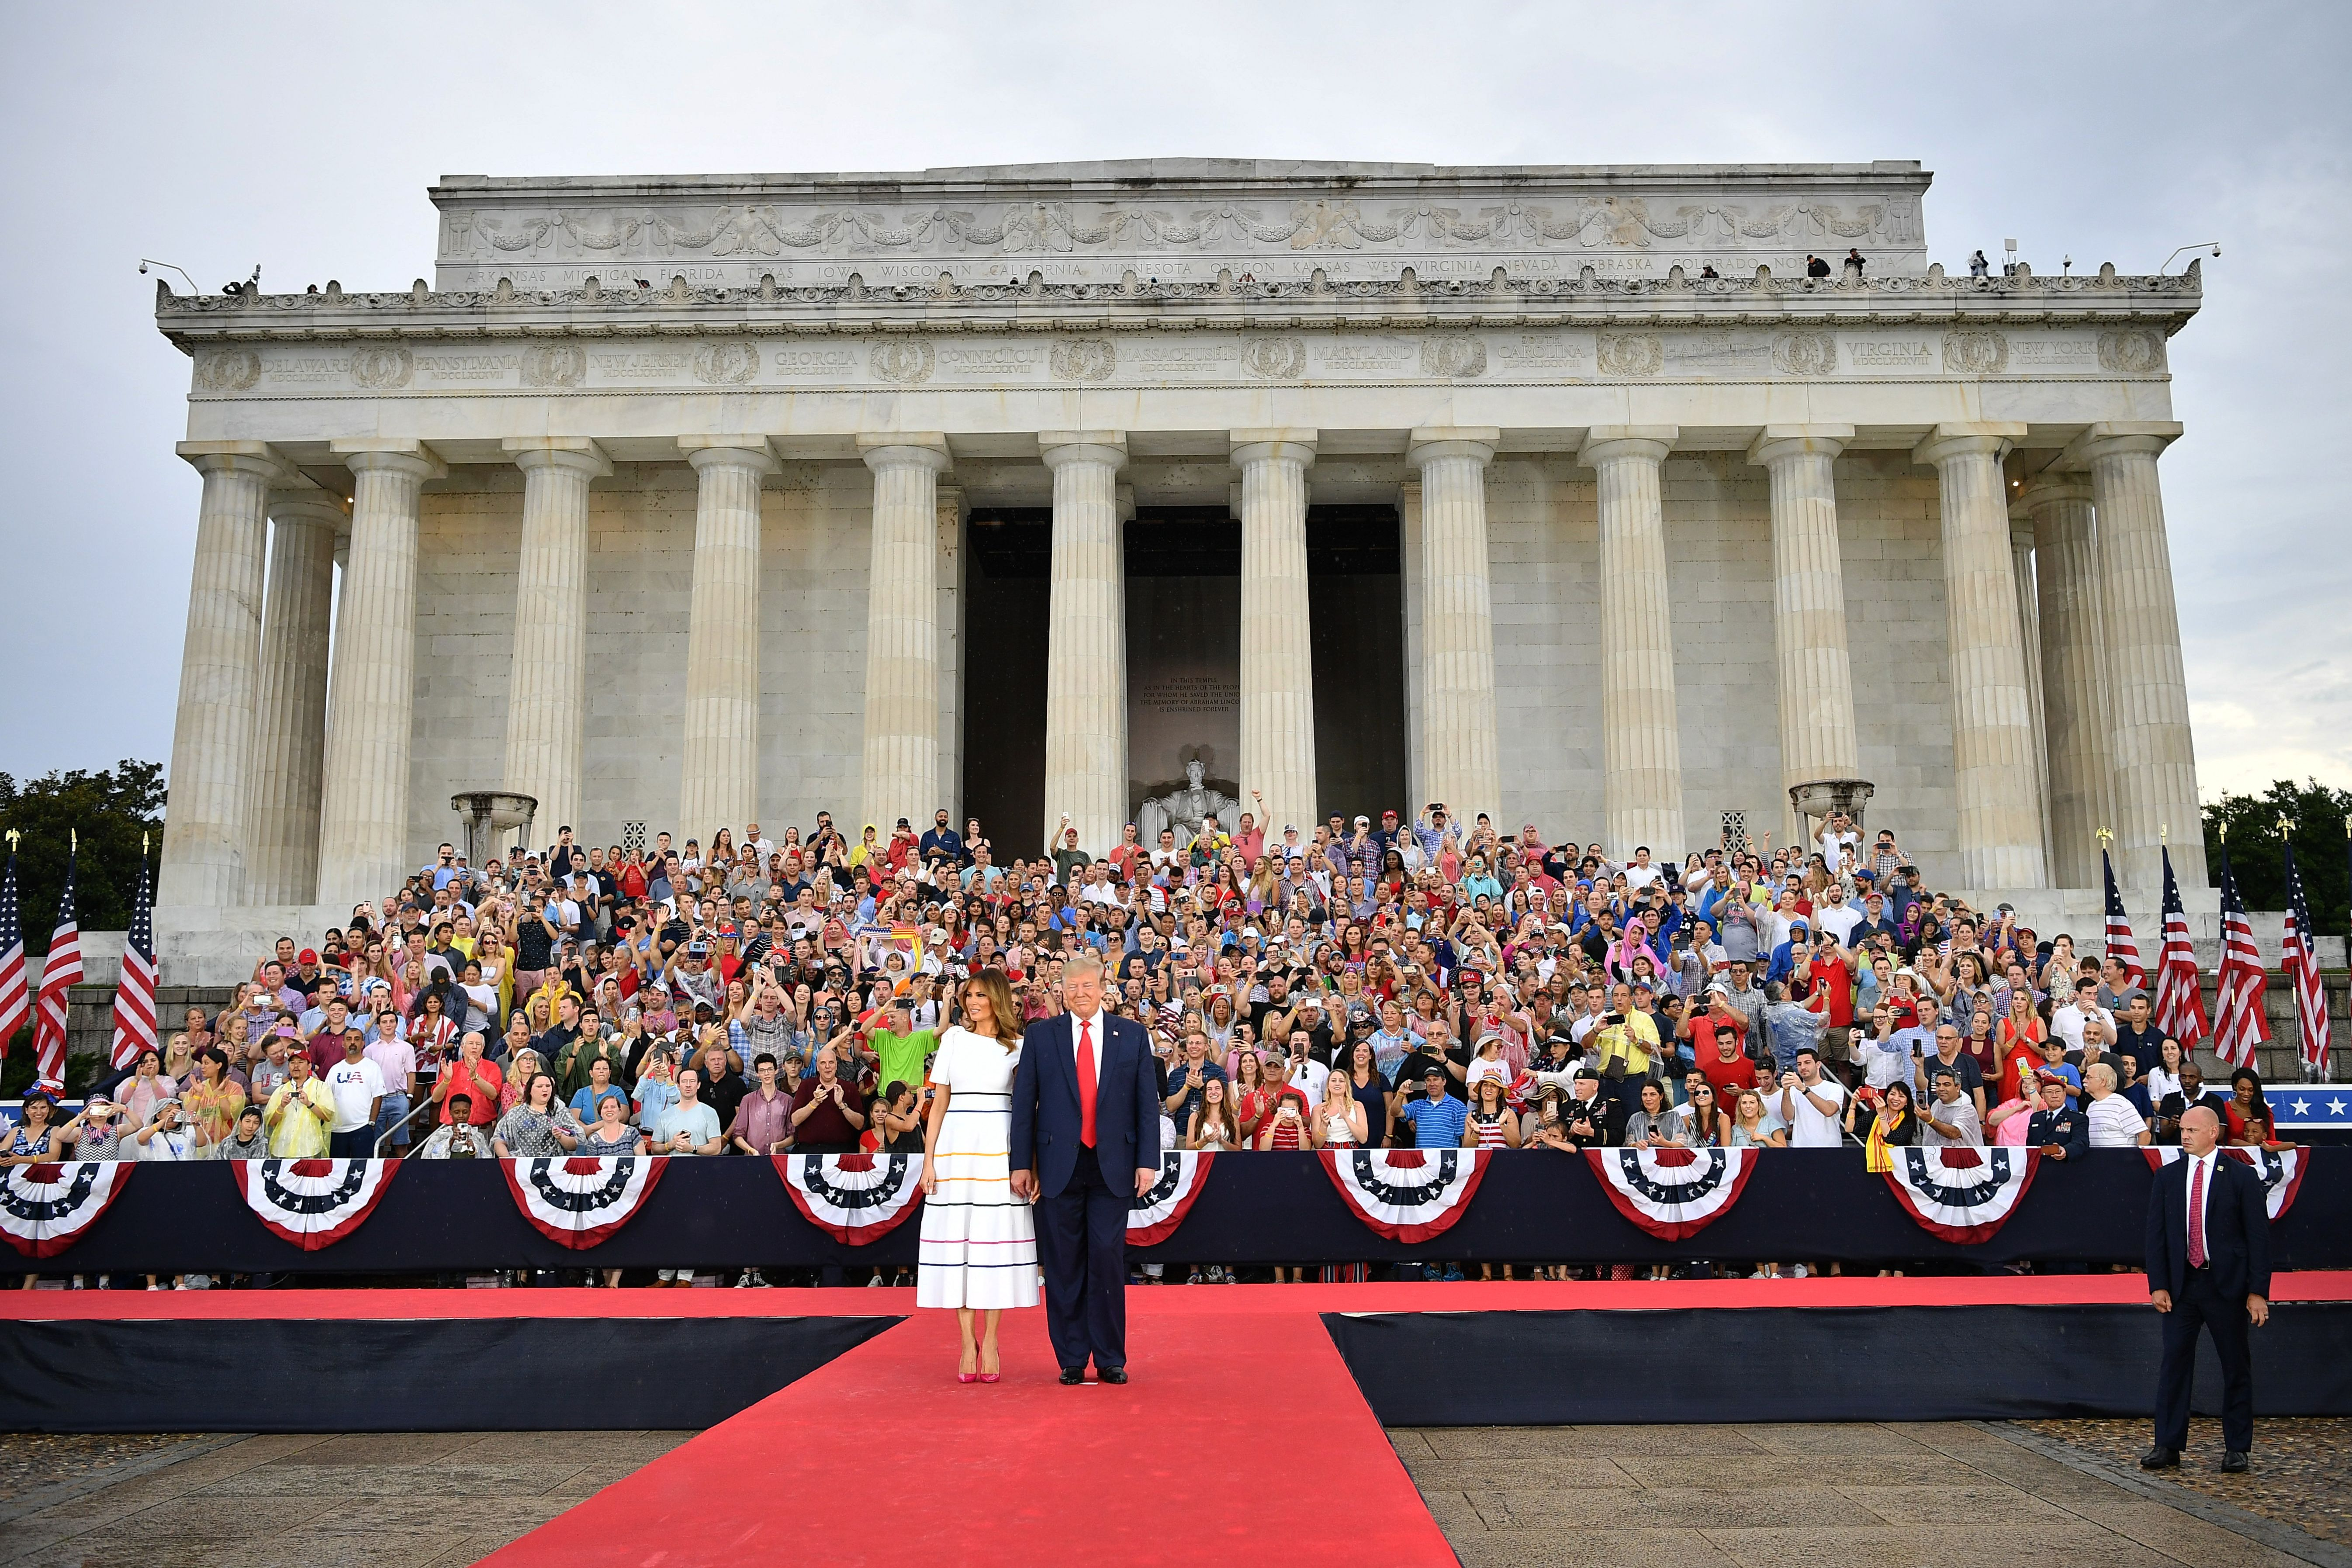 """US President Donald Trump and First Lady Melania Trump arrive to """"Salute to America"""" Fourth of July event at the Lincoln Memorial in Washington, DC, July 4, 2019. (Photo by MANDEL NGAN / AFP)        (Photo credit should read MANDEL NGAN/AFP/Getty Images)"""